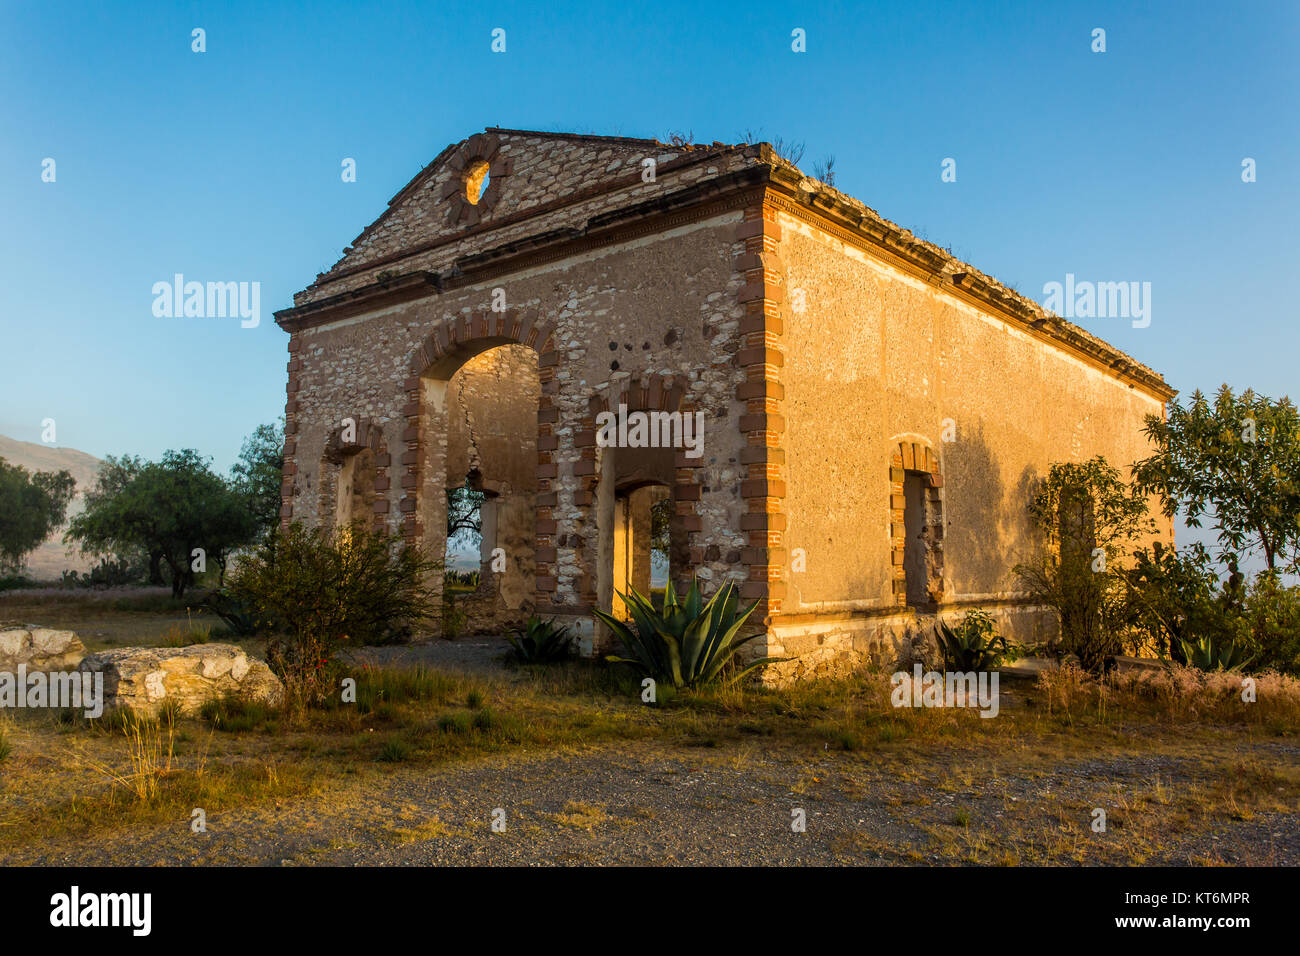 Old miners town in Mexico Mineral de pozos - Stock Image